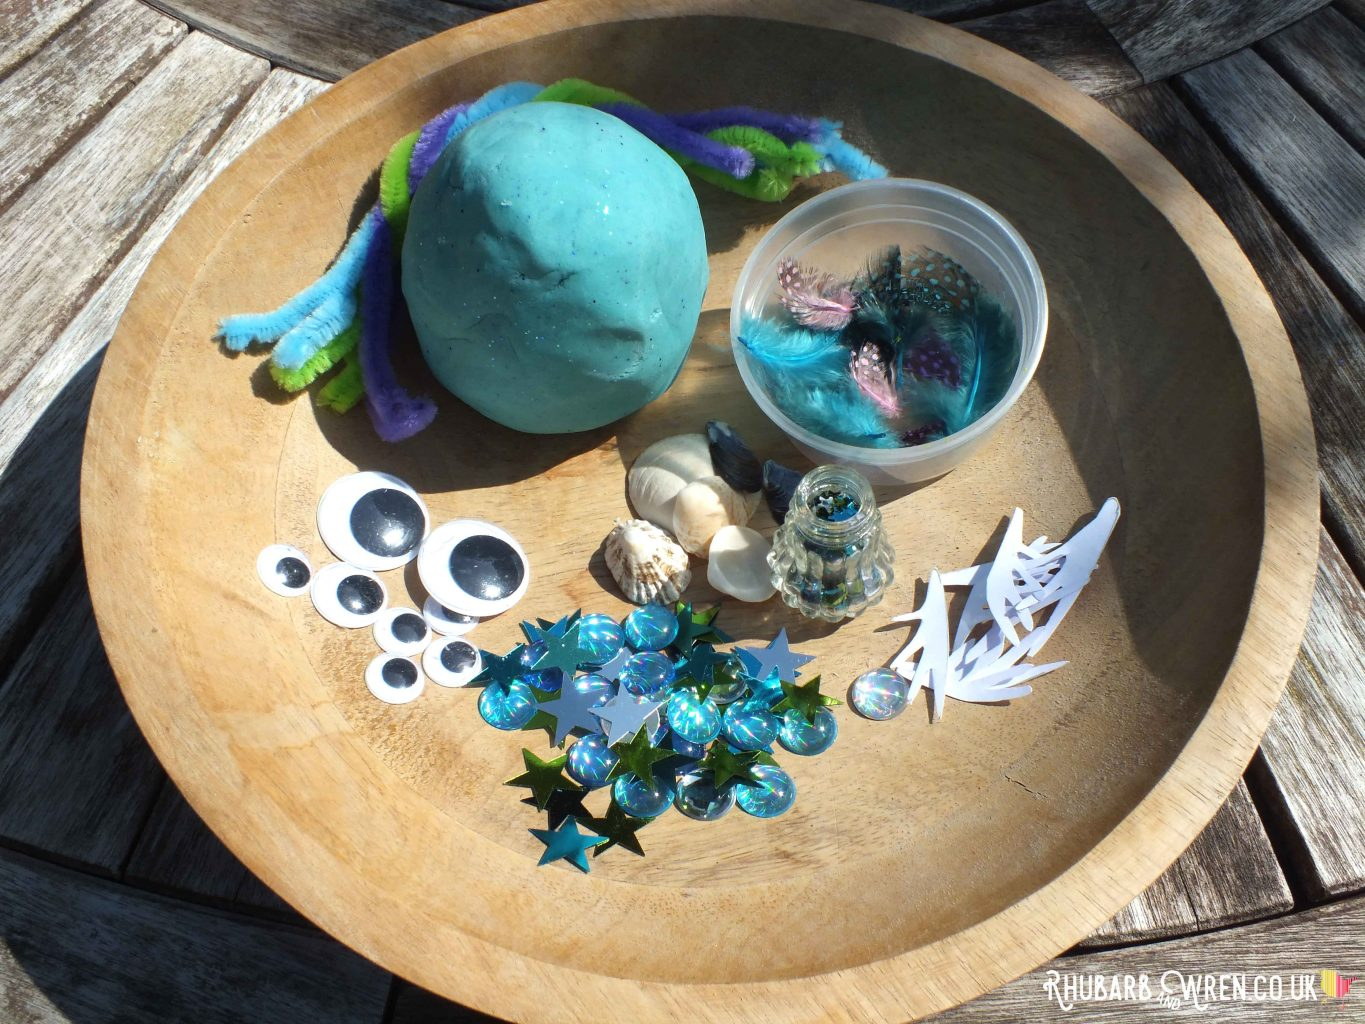 home-made play dough and decorations in a wooden bowl